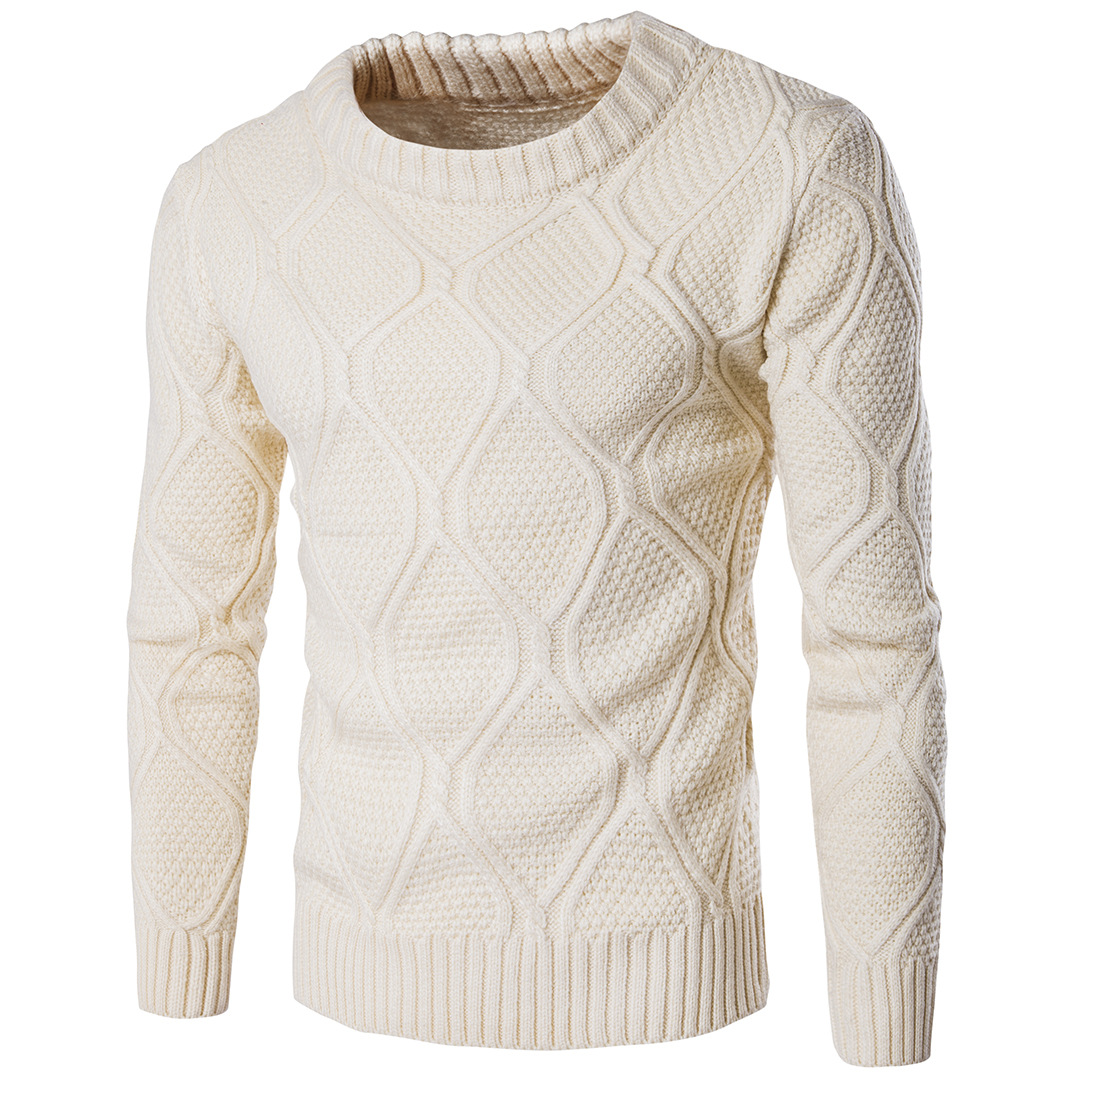 2018 Autumn Men's Casual Pullover Wool Sweater , Warm Winter Men's Round Neck Solid Sweater Men , Fashion Twist Knit Sweater